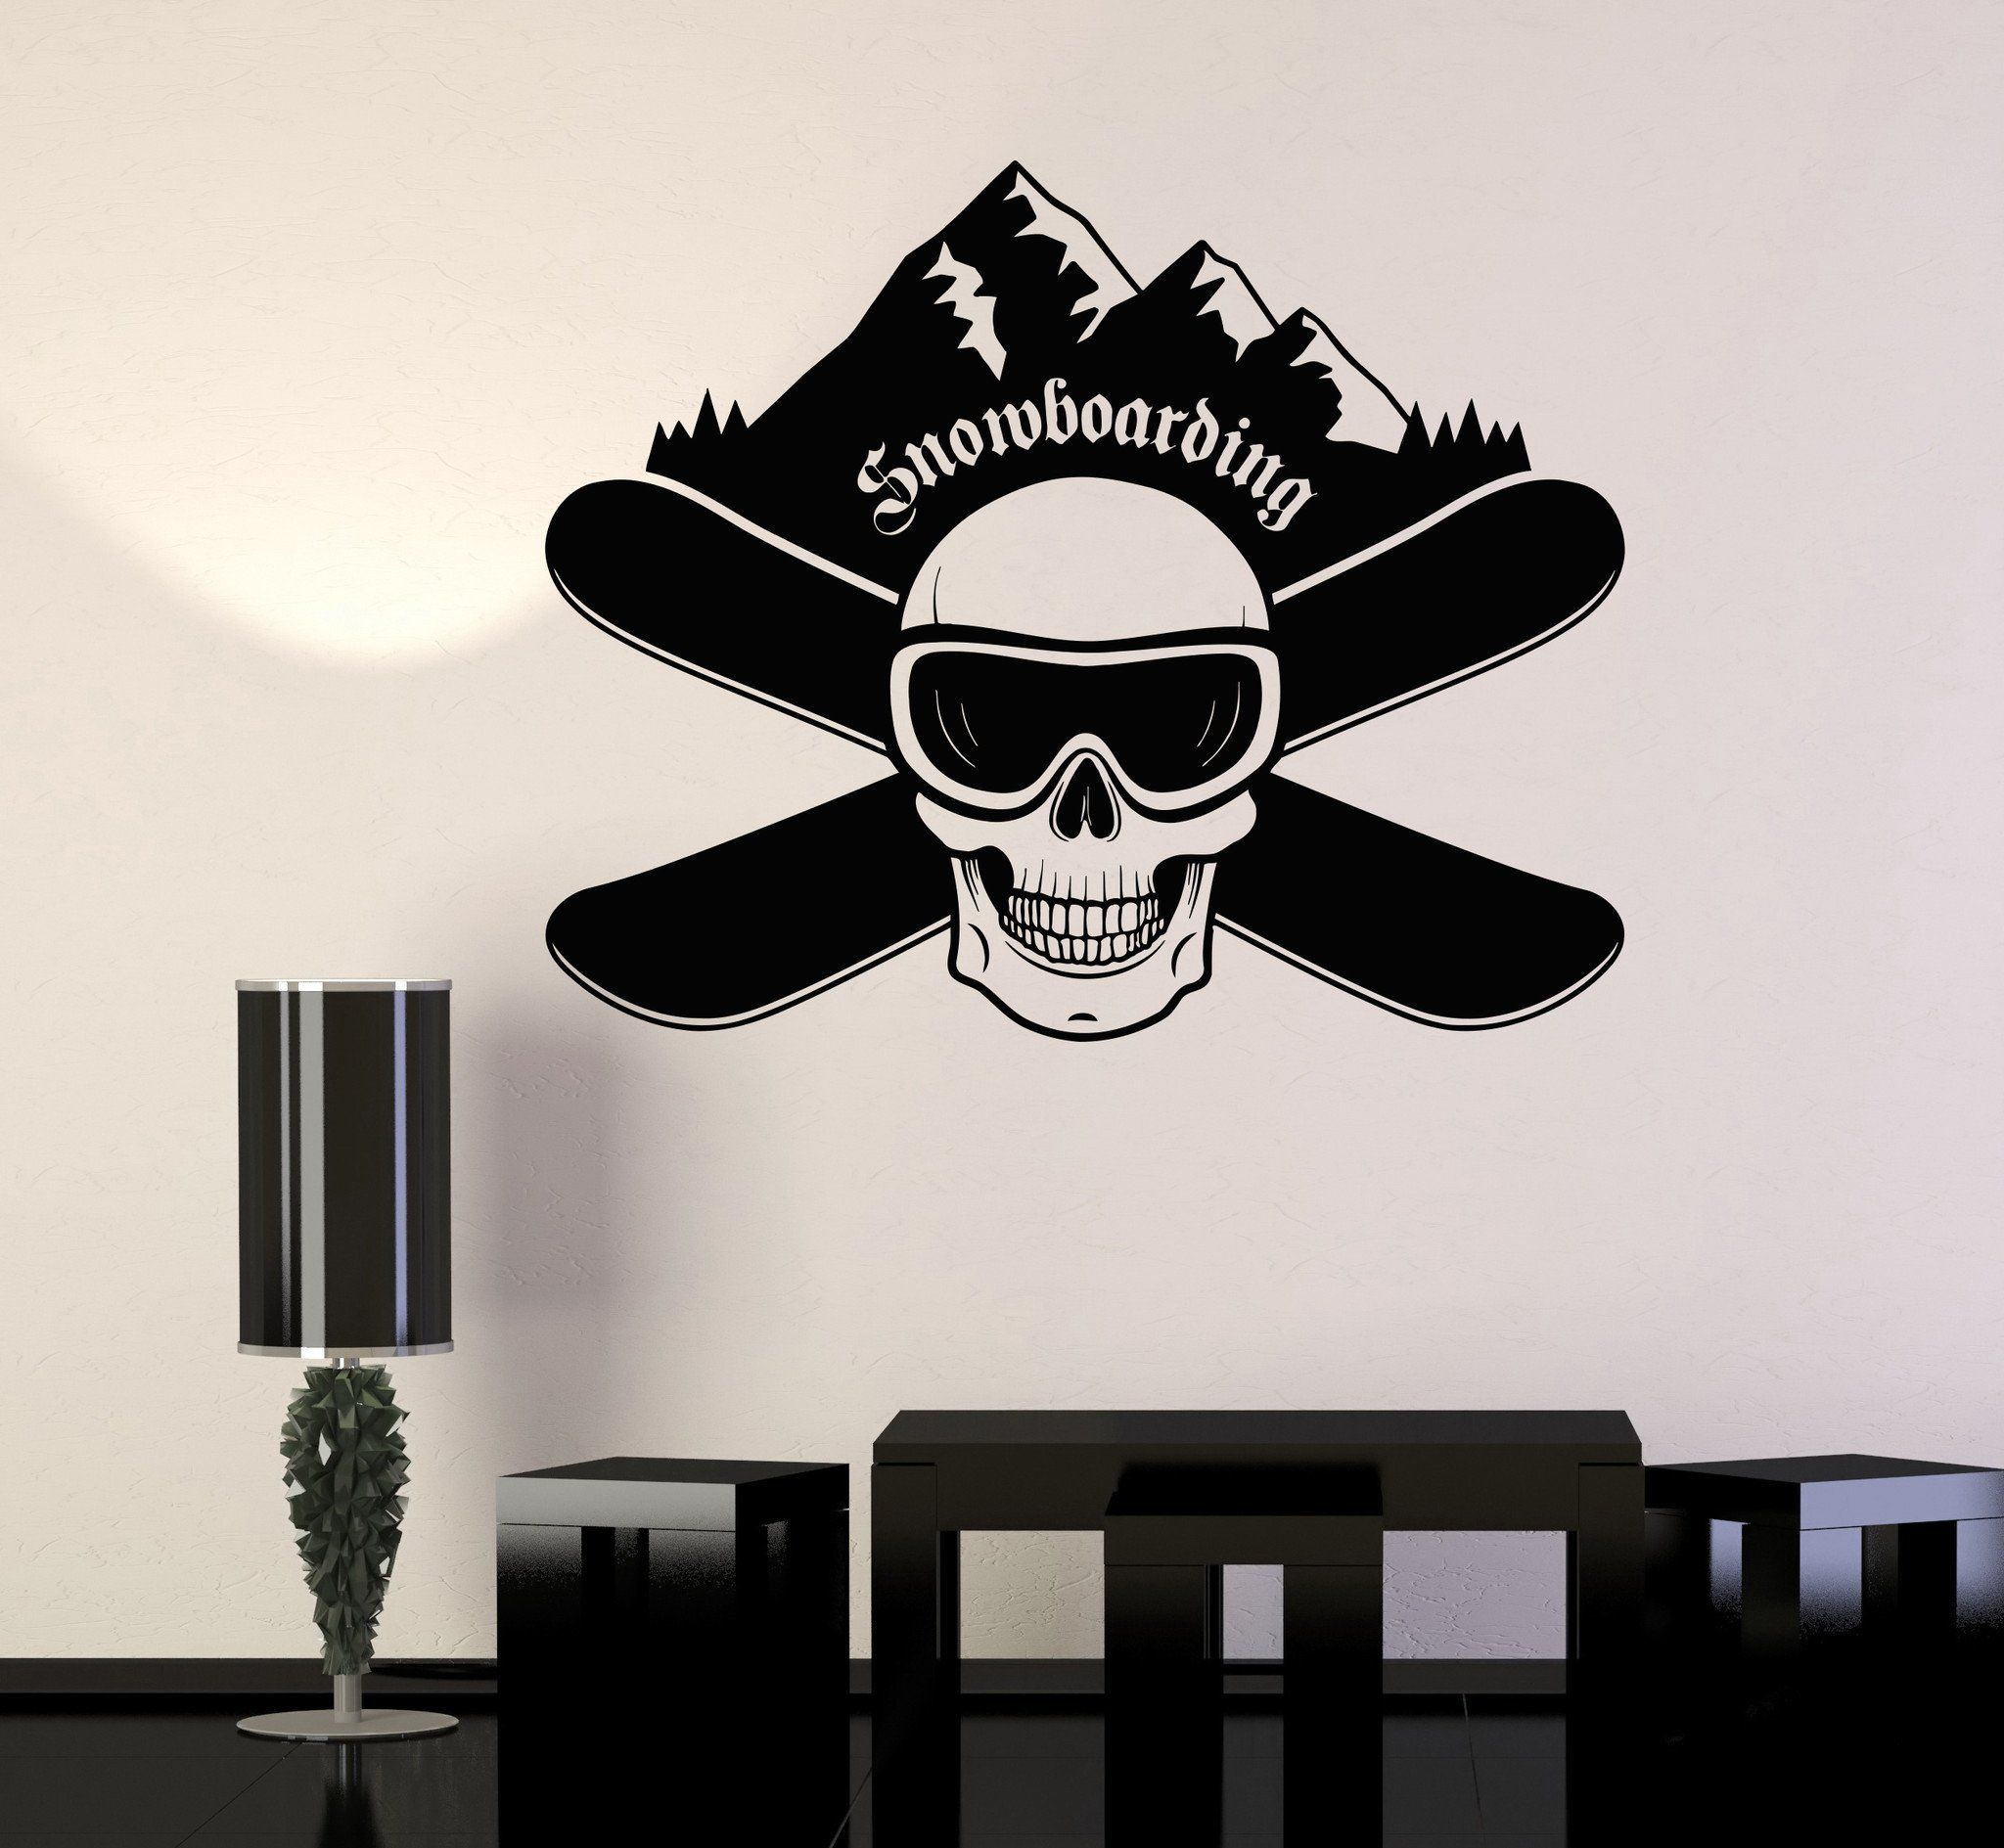 Vinyl Wall Decal Snowboarding Skull Boards Extreme Sports Stickers Mural Unique Gift 536ig Vinyl Wall Decals Wall Decals Vinyl